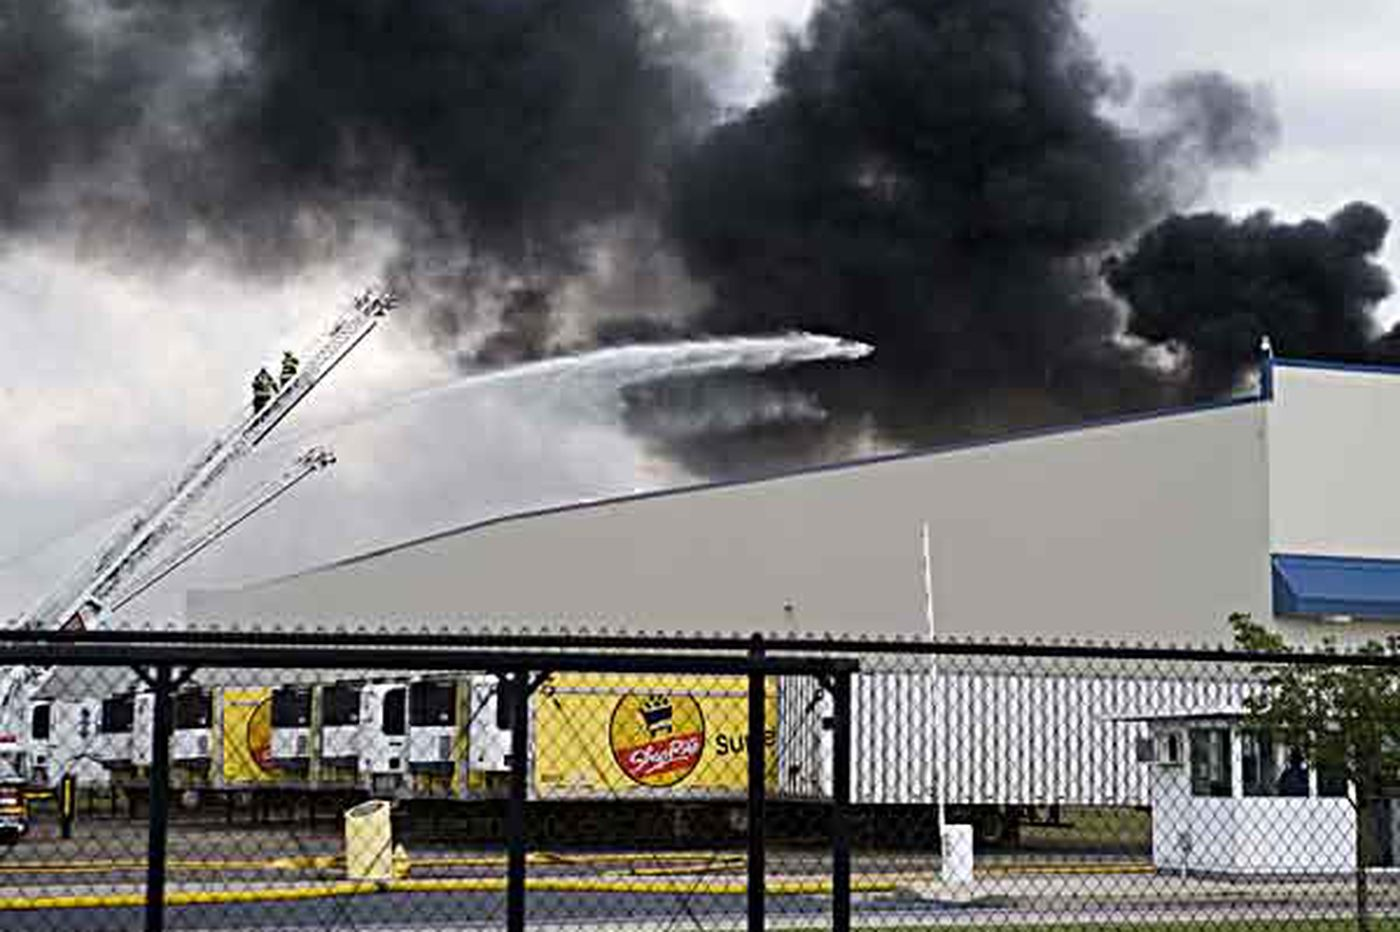 At Dietz site, unwelcome reminders of the fire